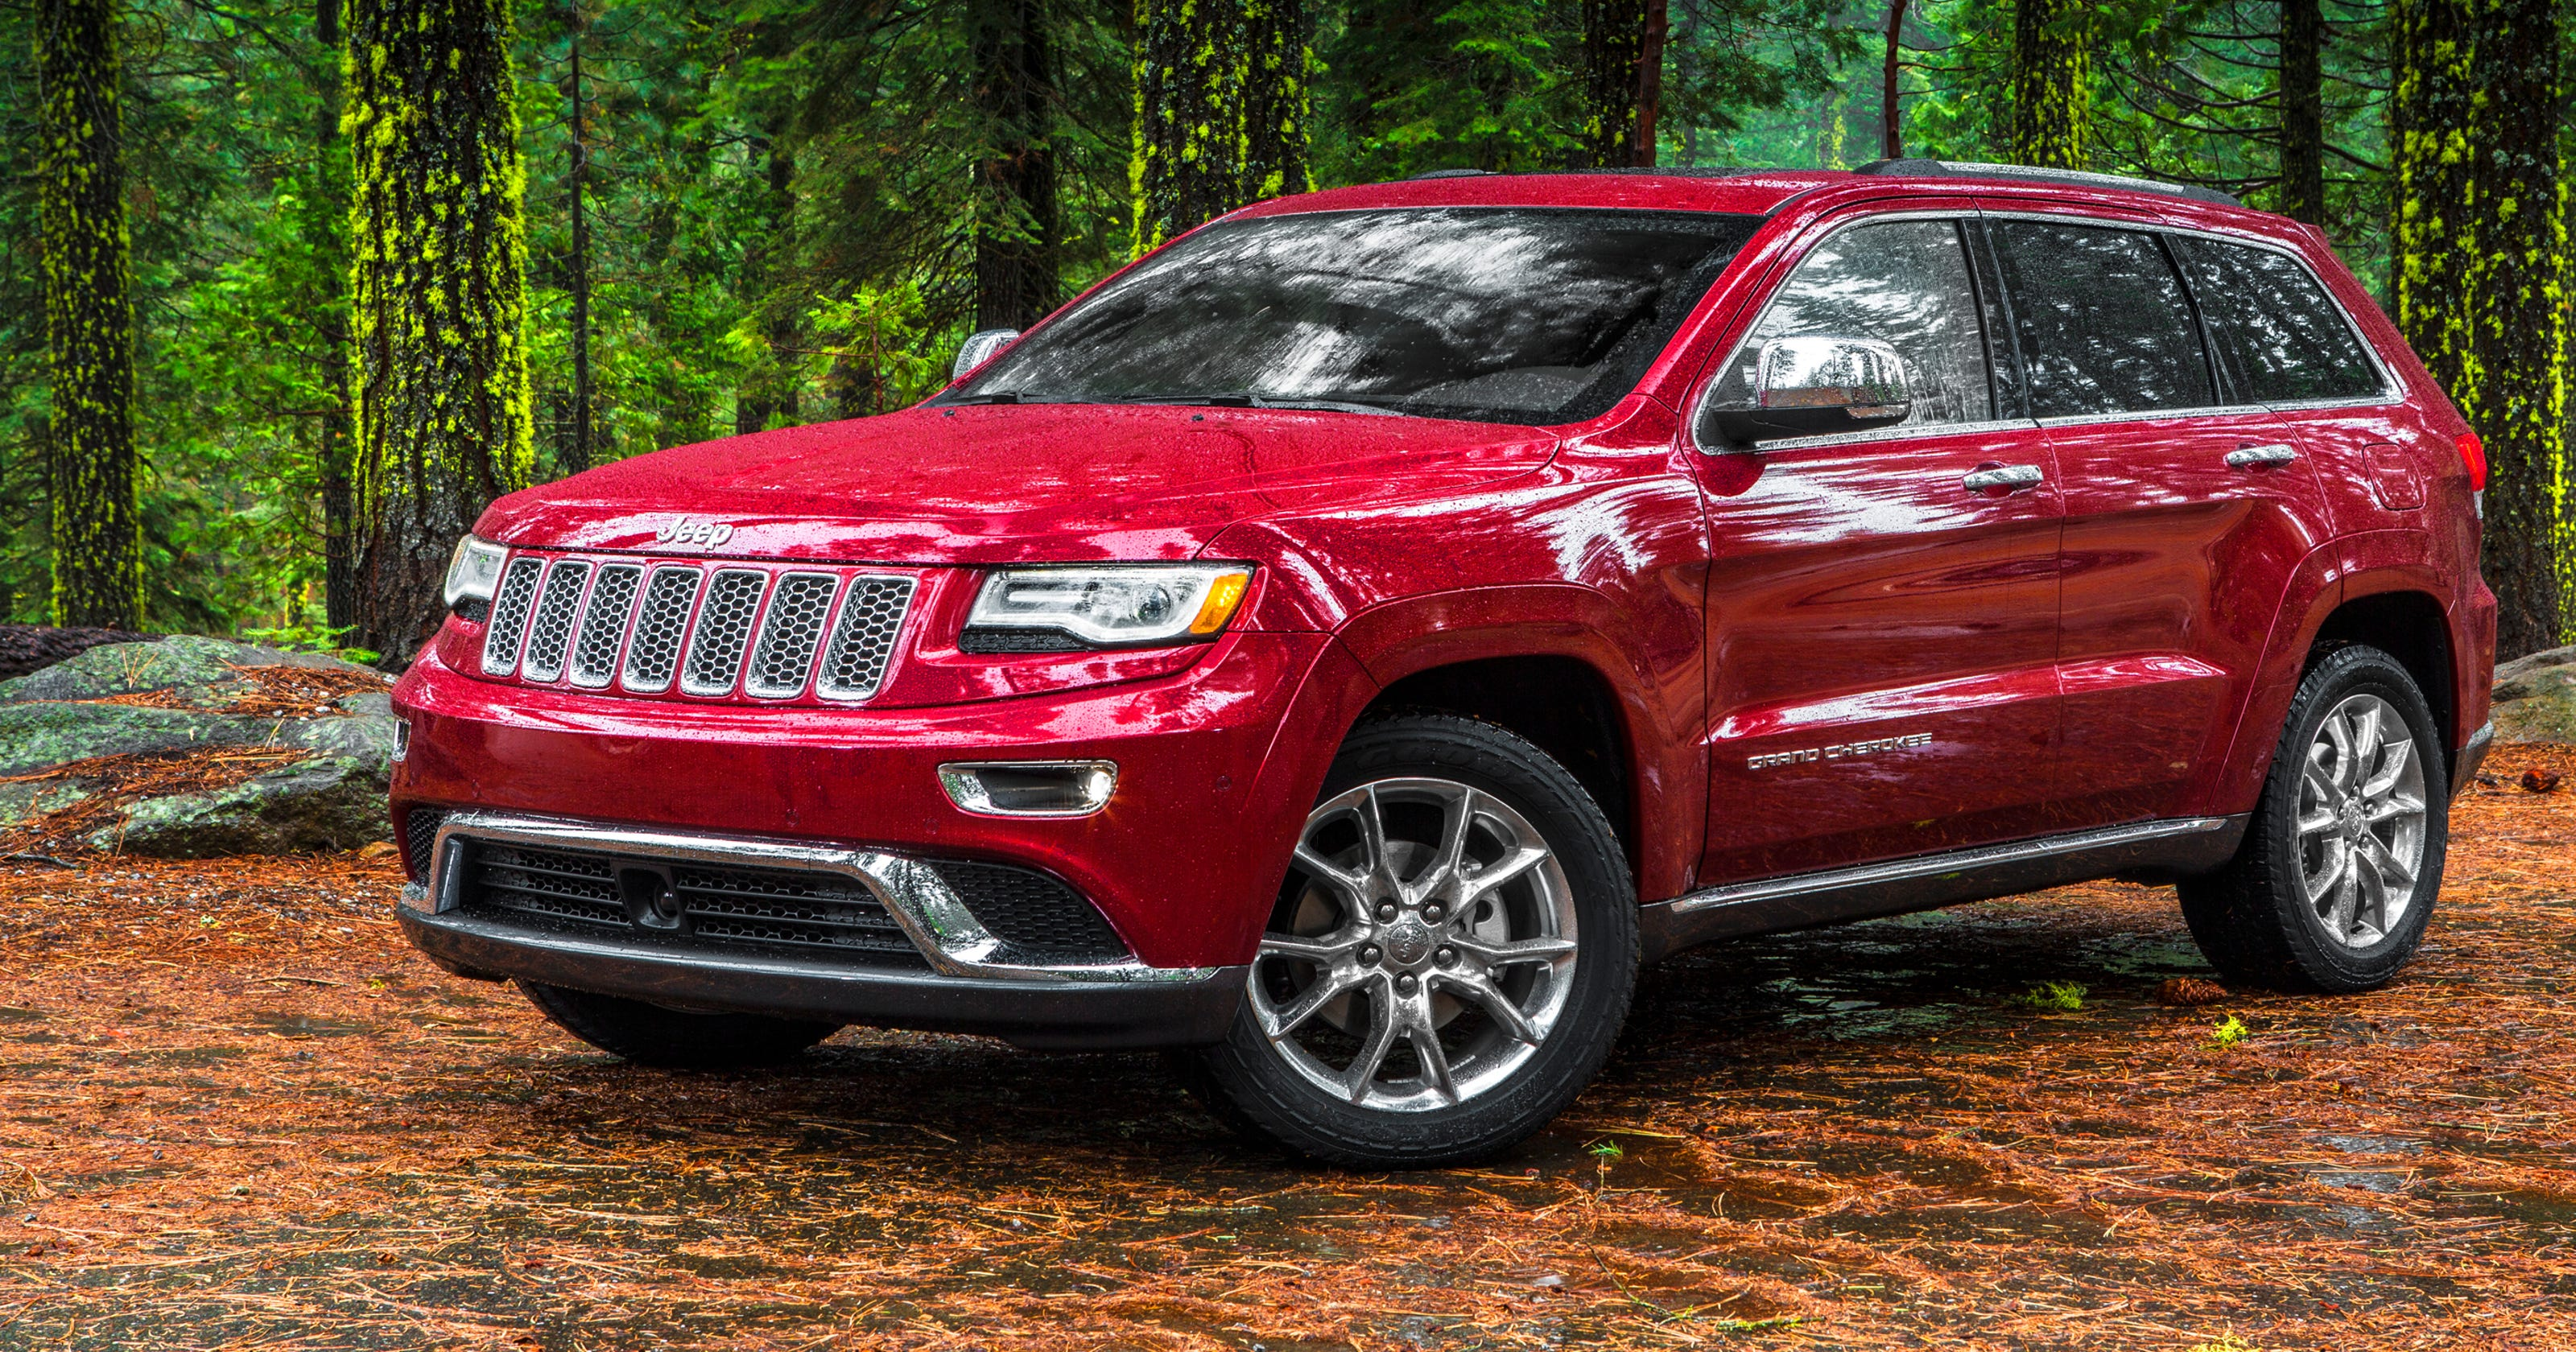 Test Drive: New diesel Cherokee not quite Grand